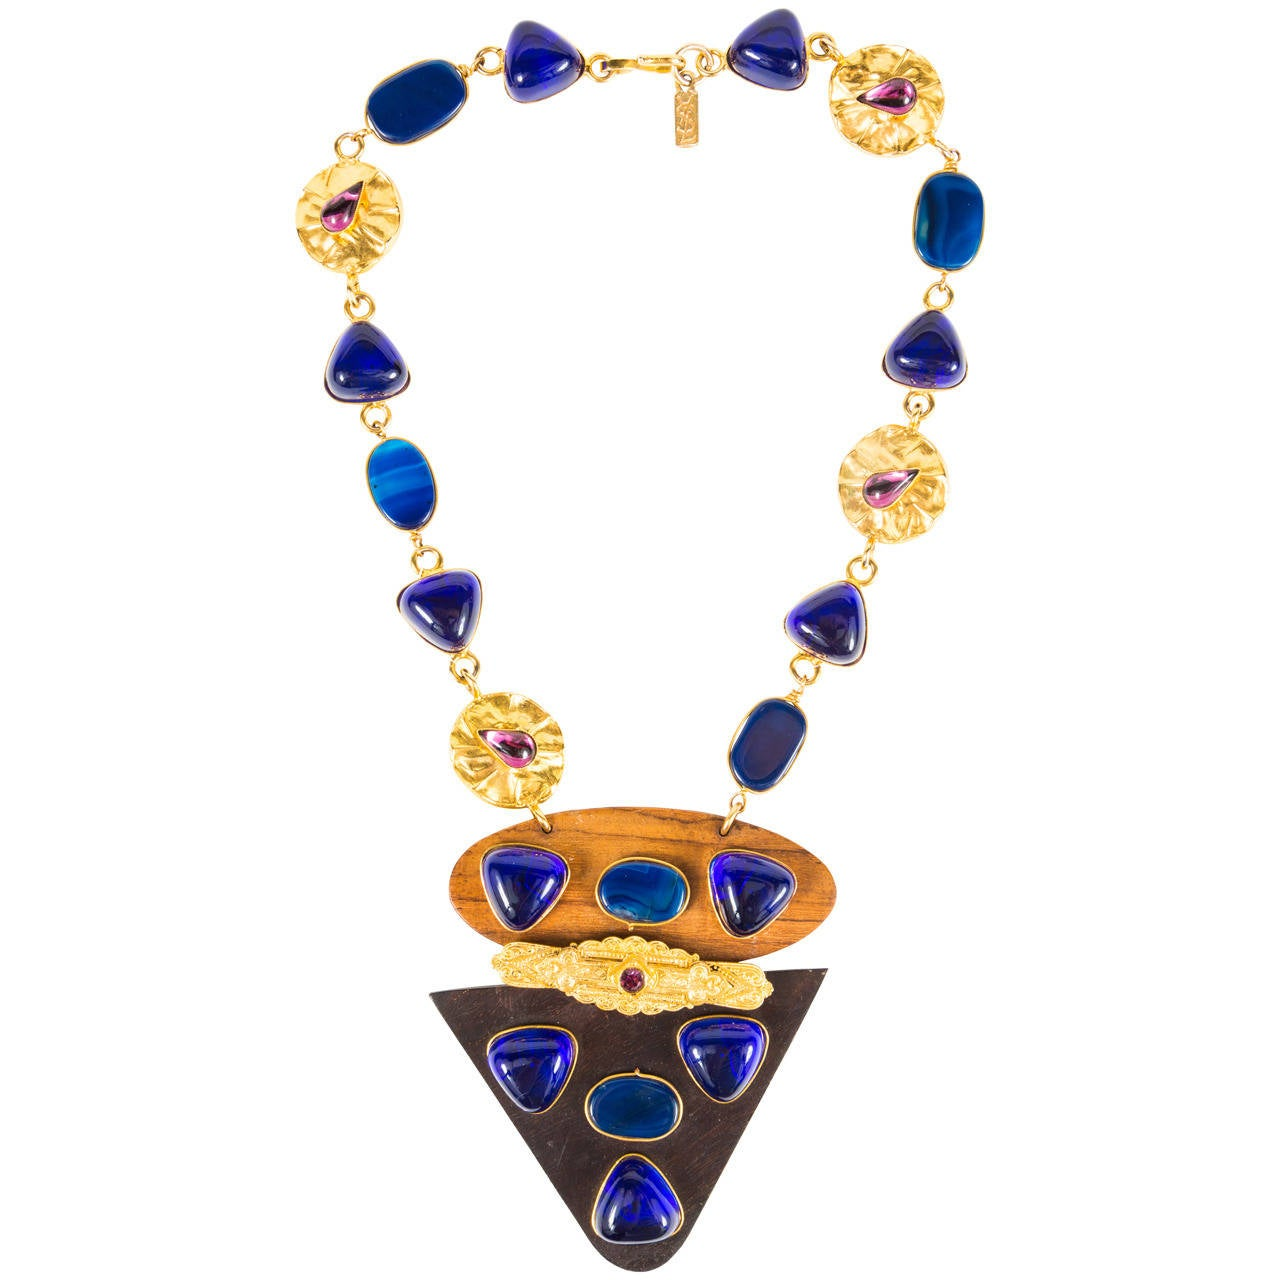 Triangular Mixed Materials Yves Saint Laurent Necklace For Sale